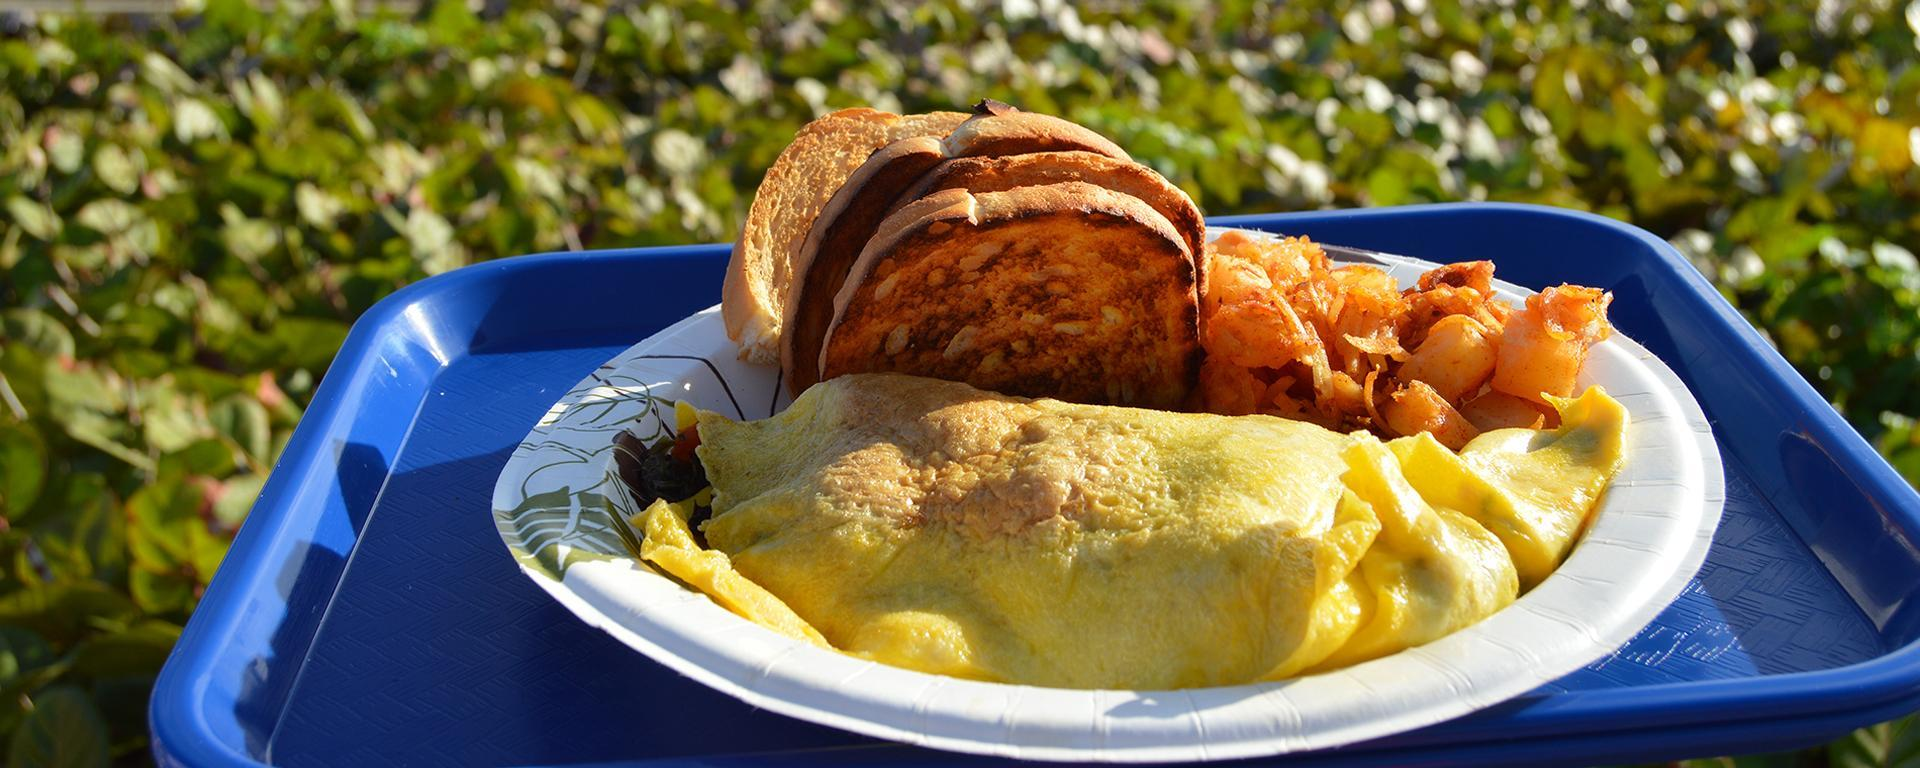 An omelette available for purchase at Sand Dune Cafe